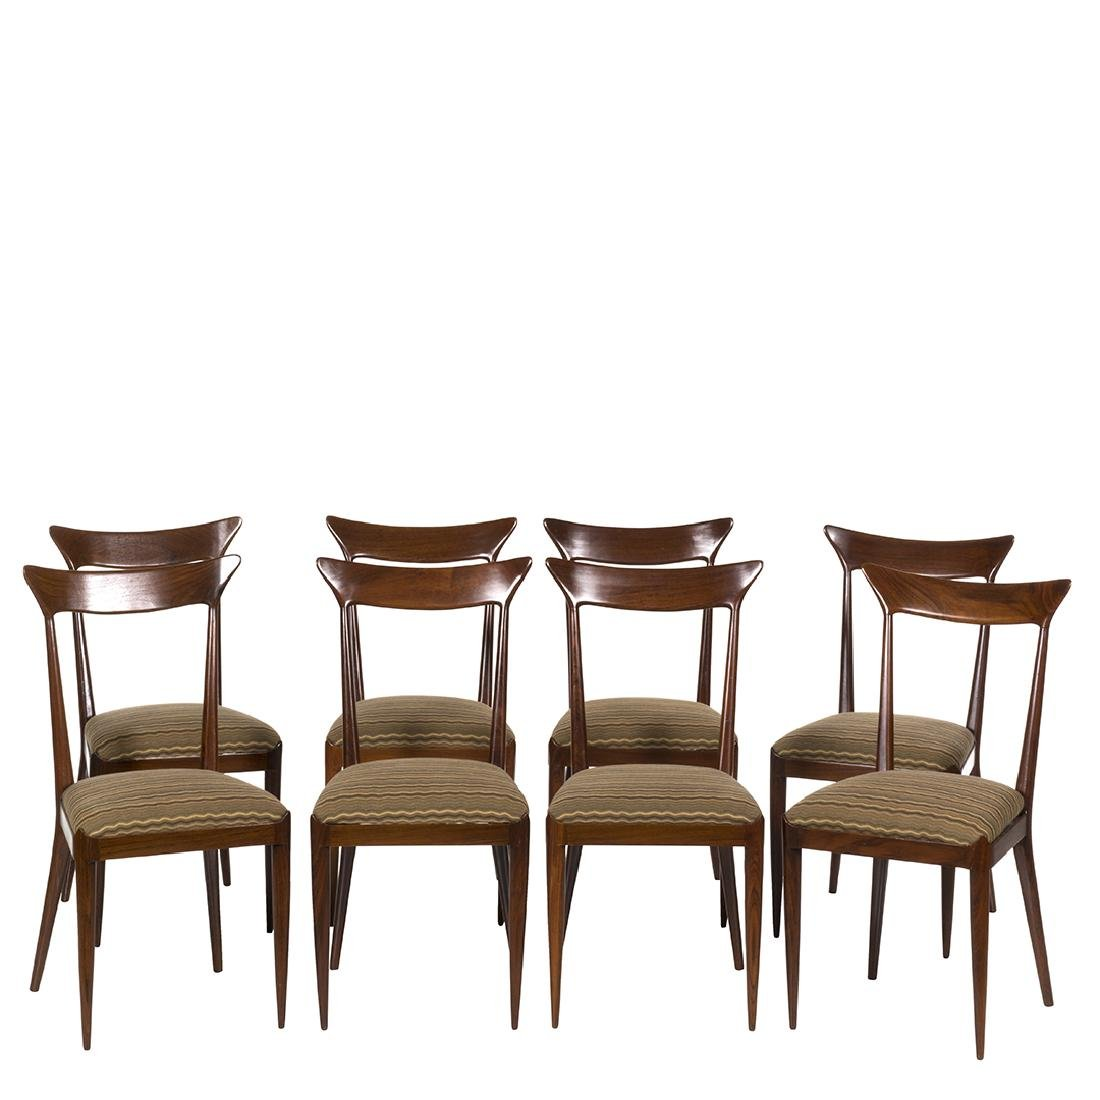 Ico Parisi Dining Chairs(8)